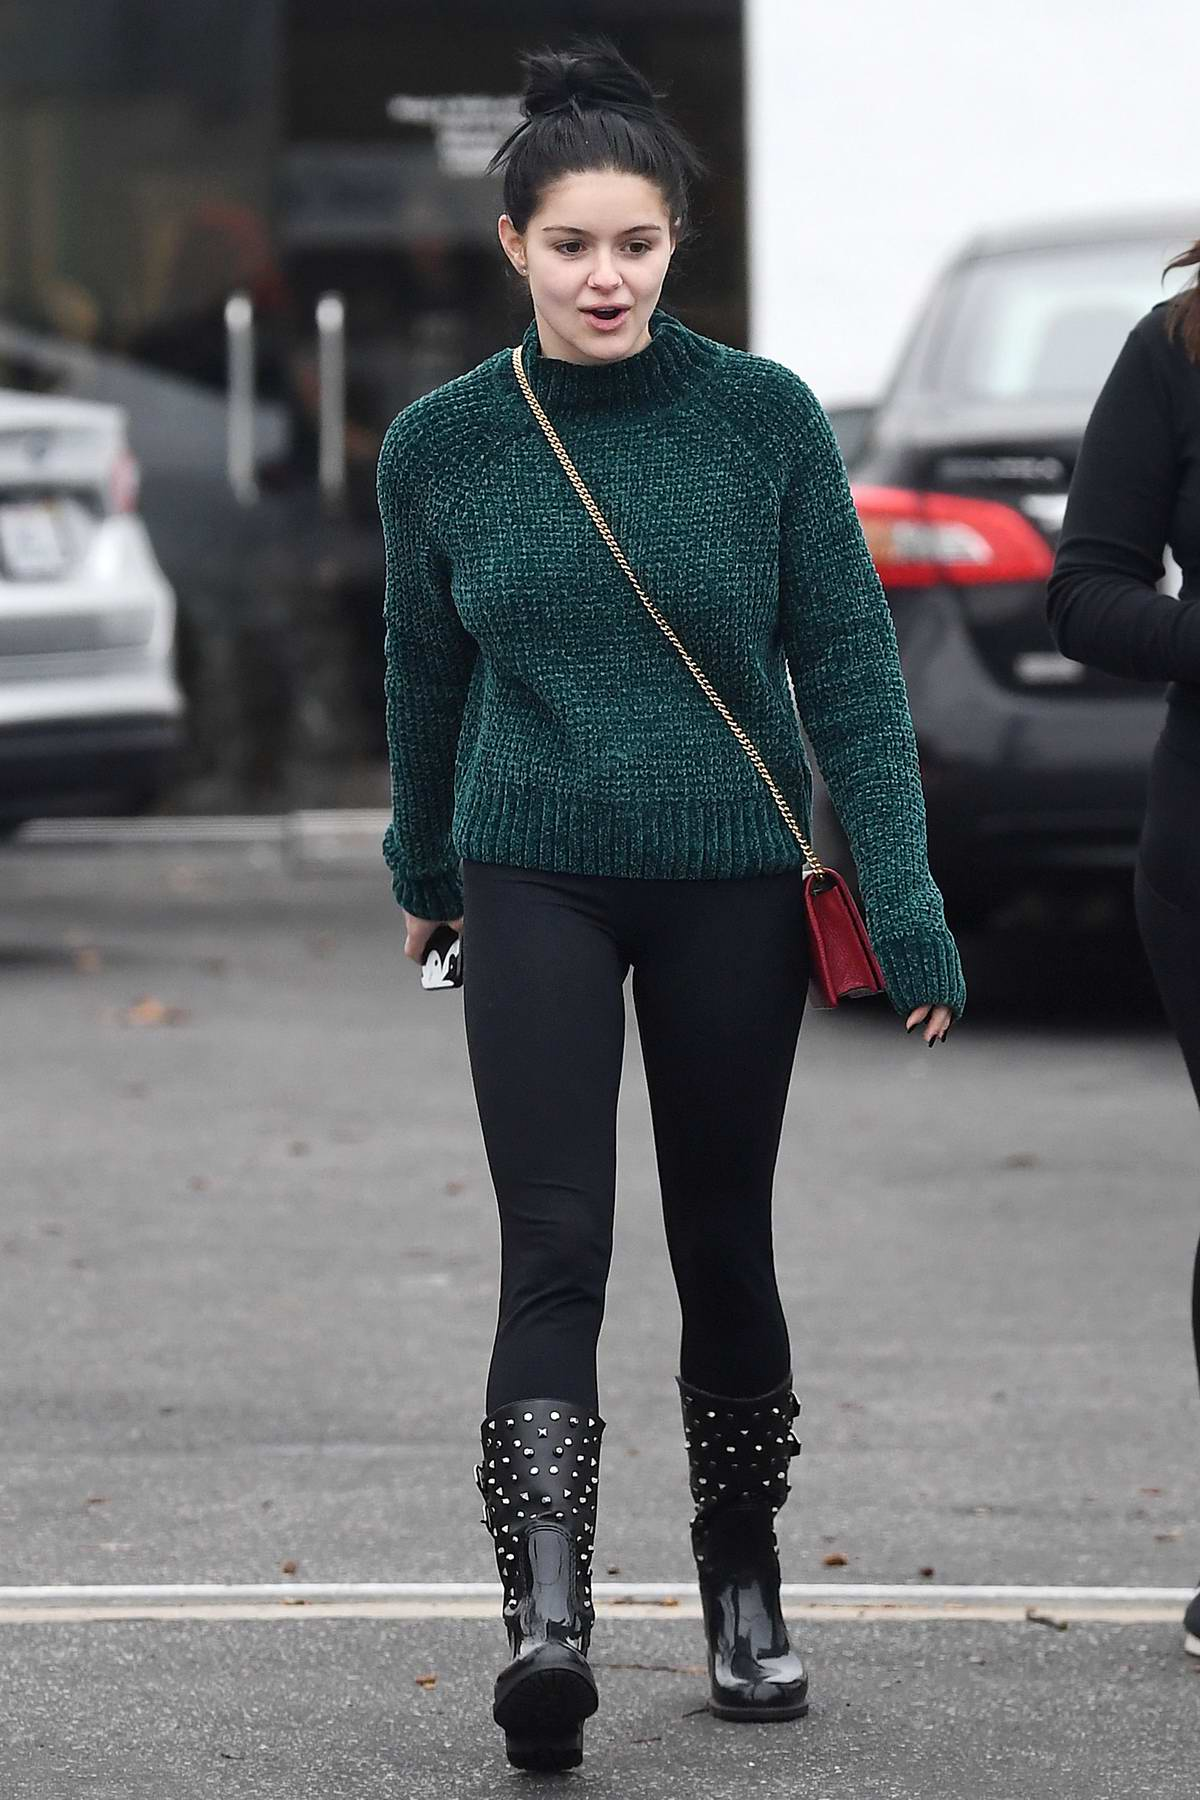 Ariel Winter wore a green sweater and black leggings while visiting Wags & Walks Dog Adoption Center in Los Angeles